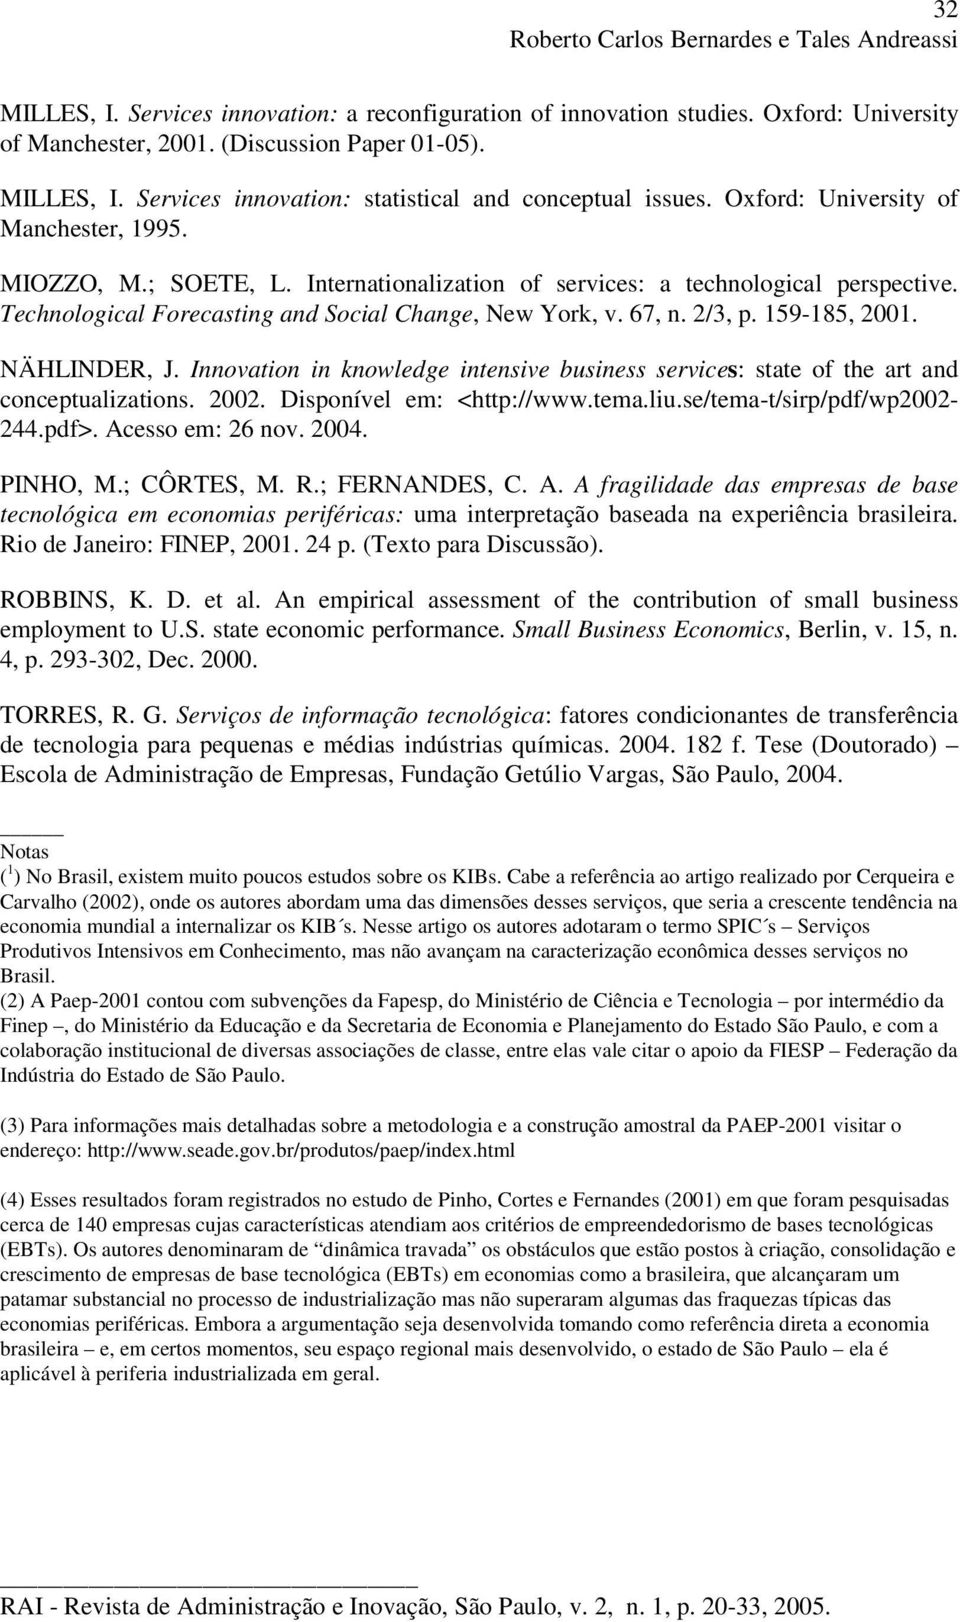 159-185, 2001. NÄHLINDER, J. Innovation in knowledge intensive business services: state of the art and conceptualizations. 2002. Disponível em: <http://www.tema.liu.se/tema-t/sirp/pdf/wp2002-244.pdf>.